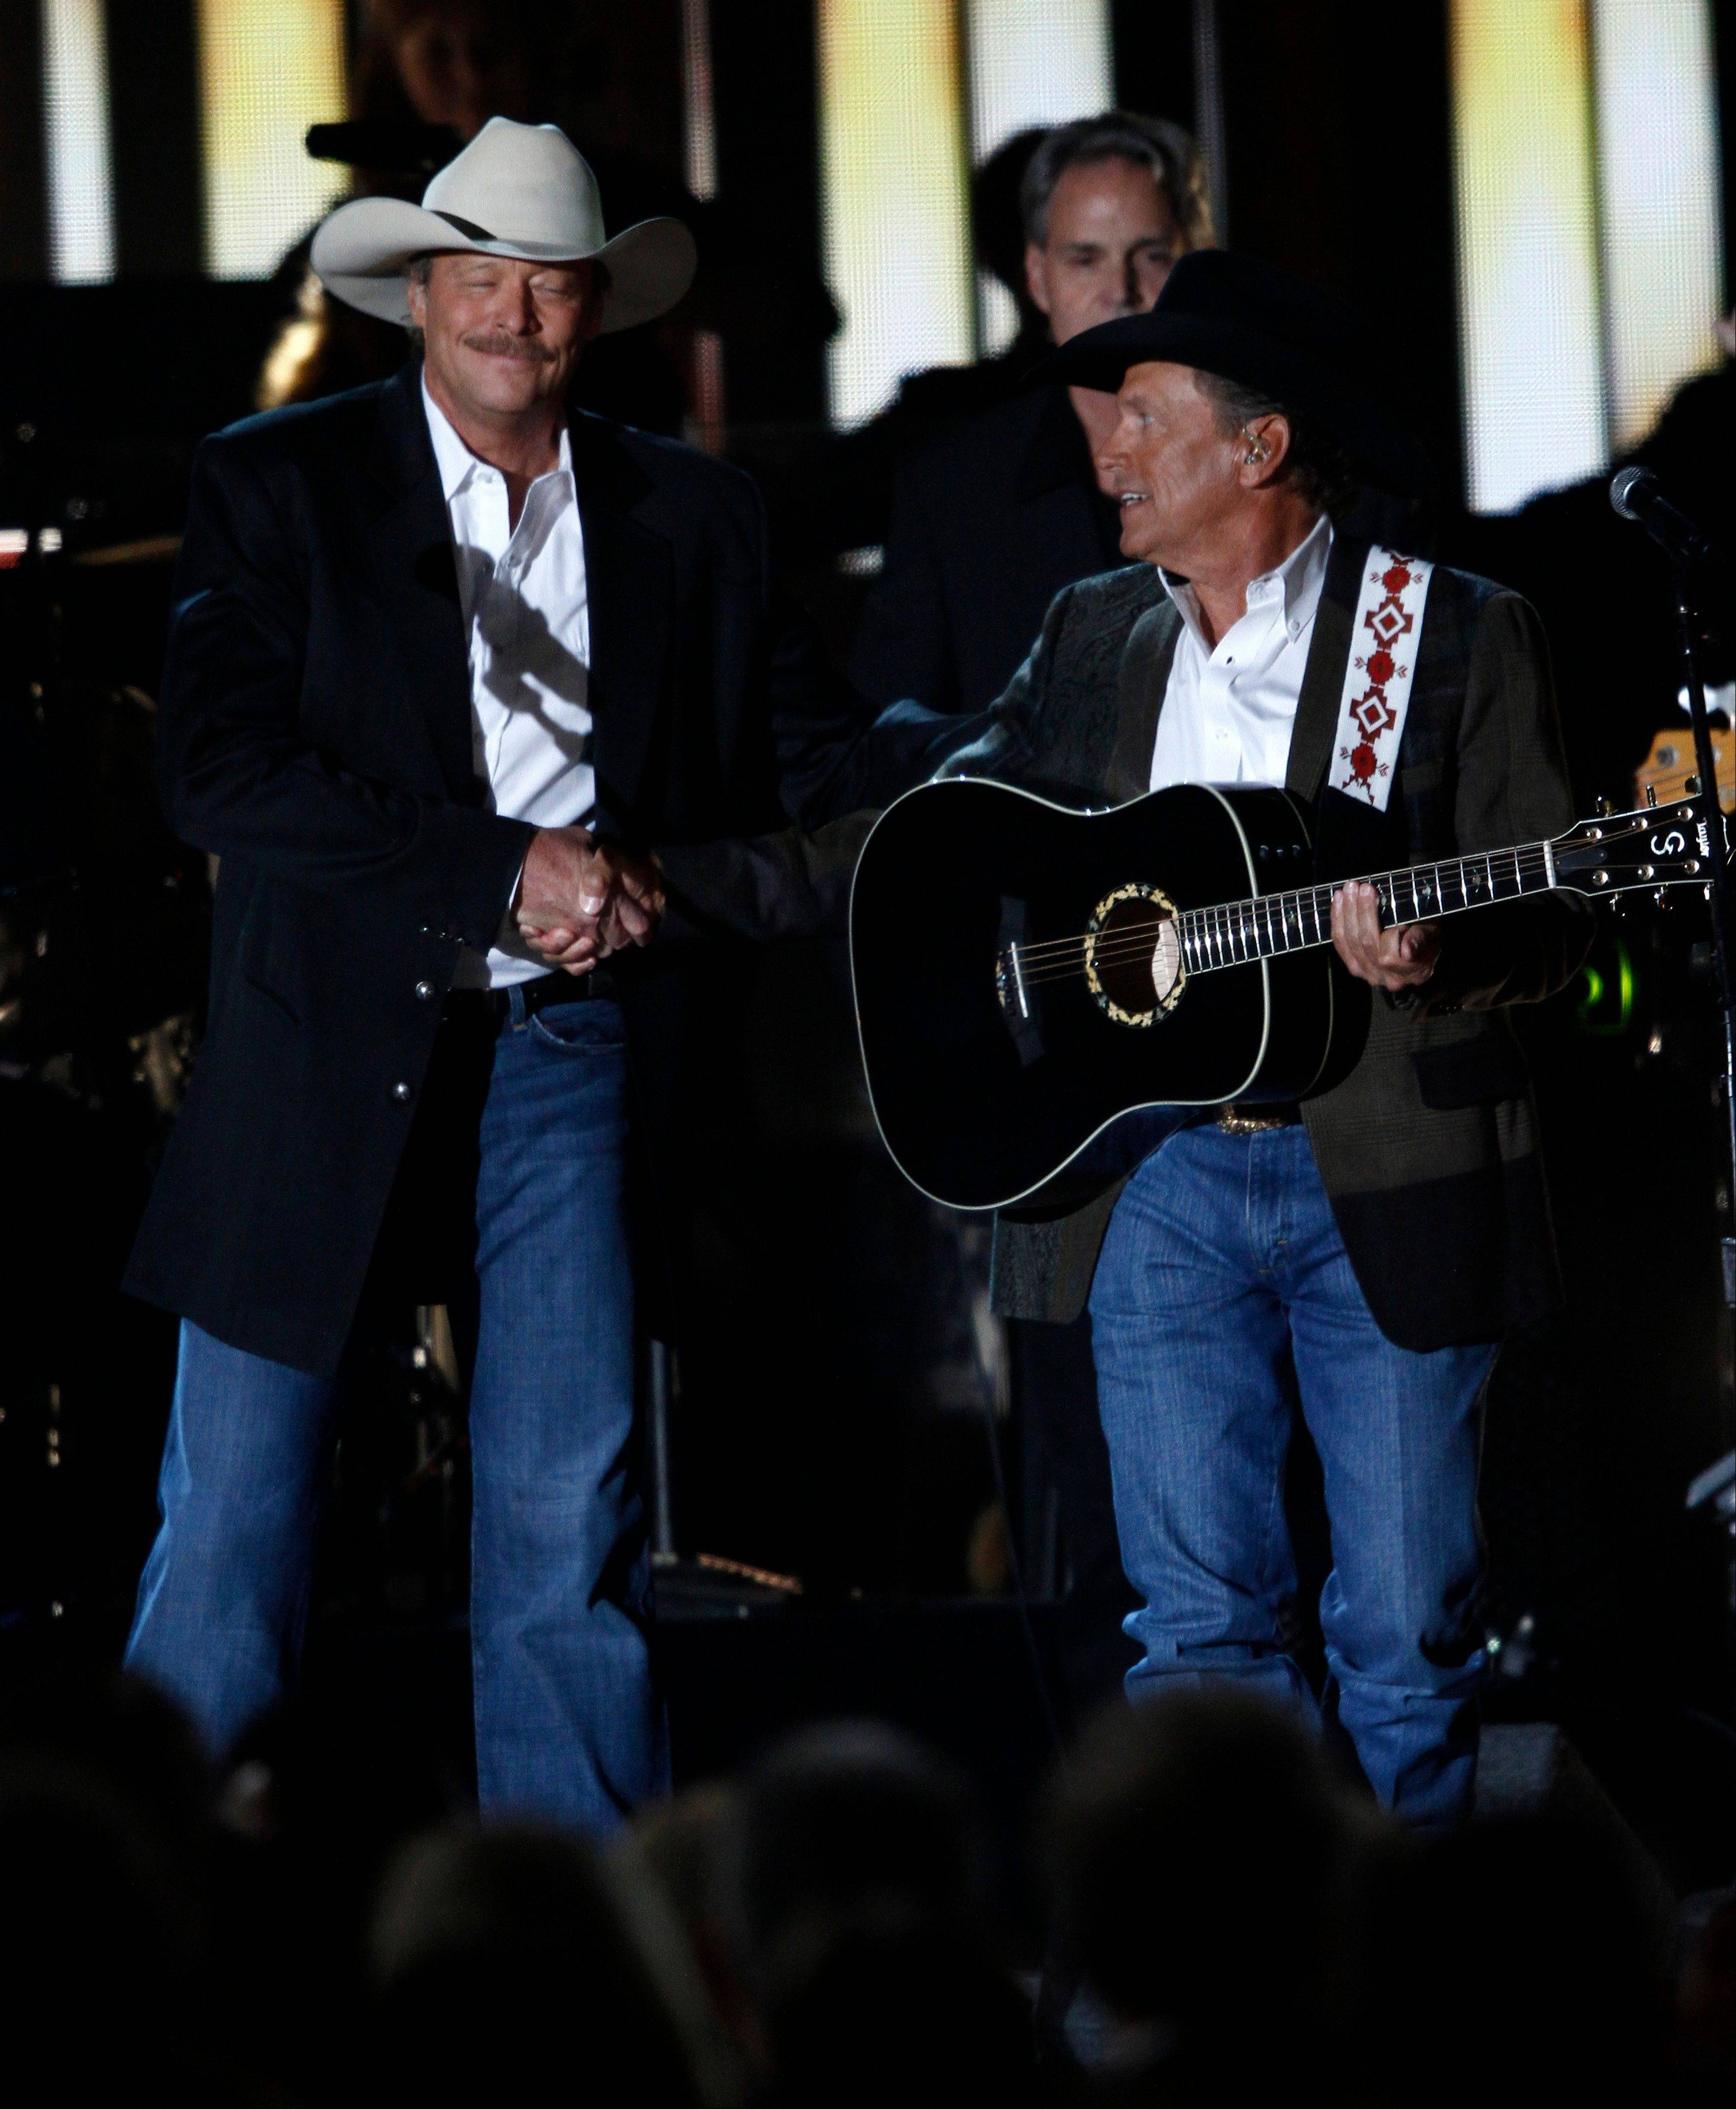 Alan Jackson, left, and George Strait shake hands after paying tribute to George Jones.